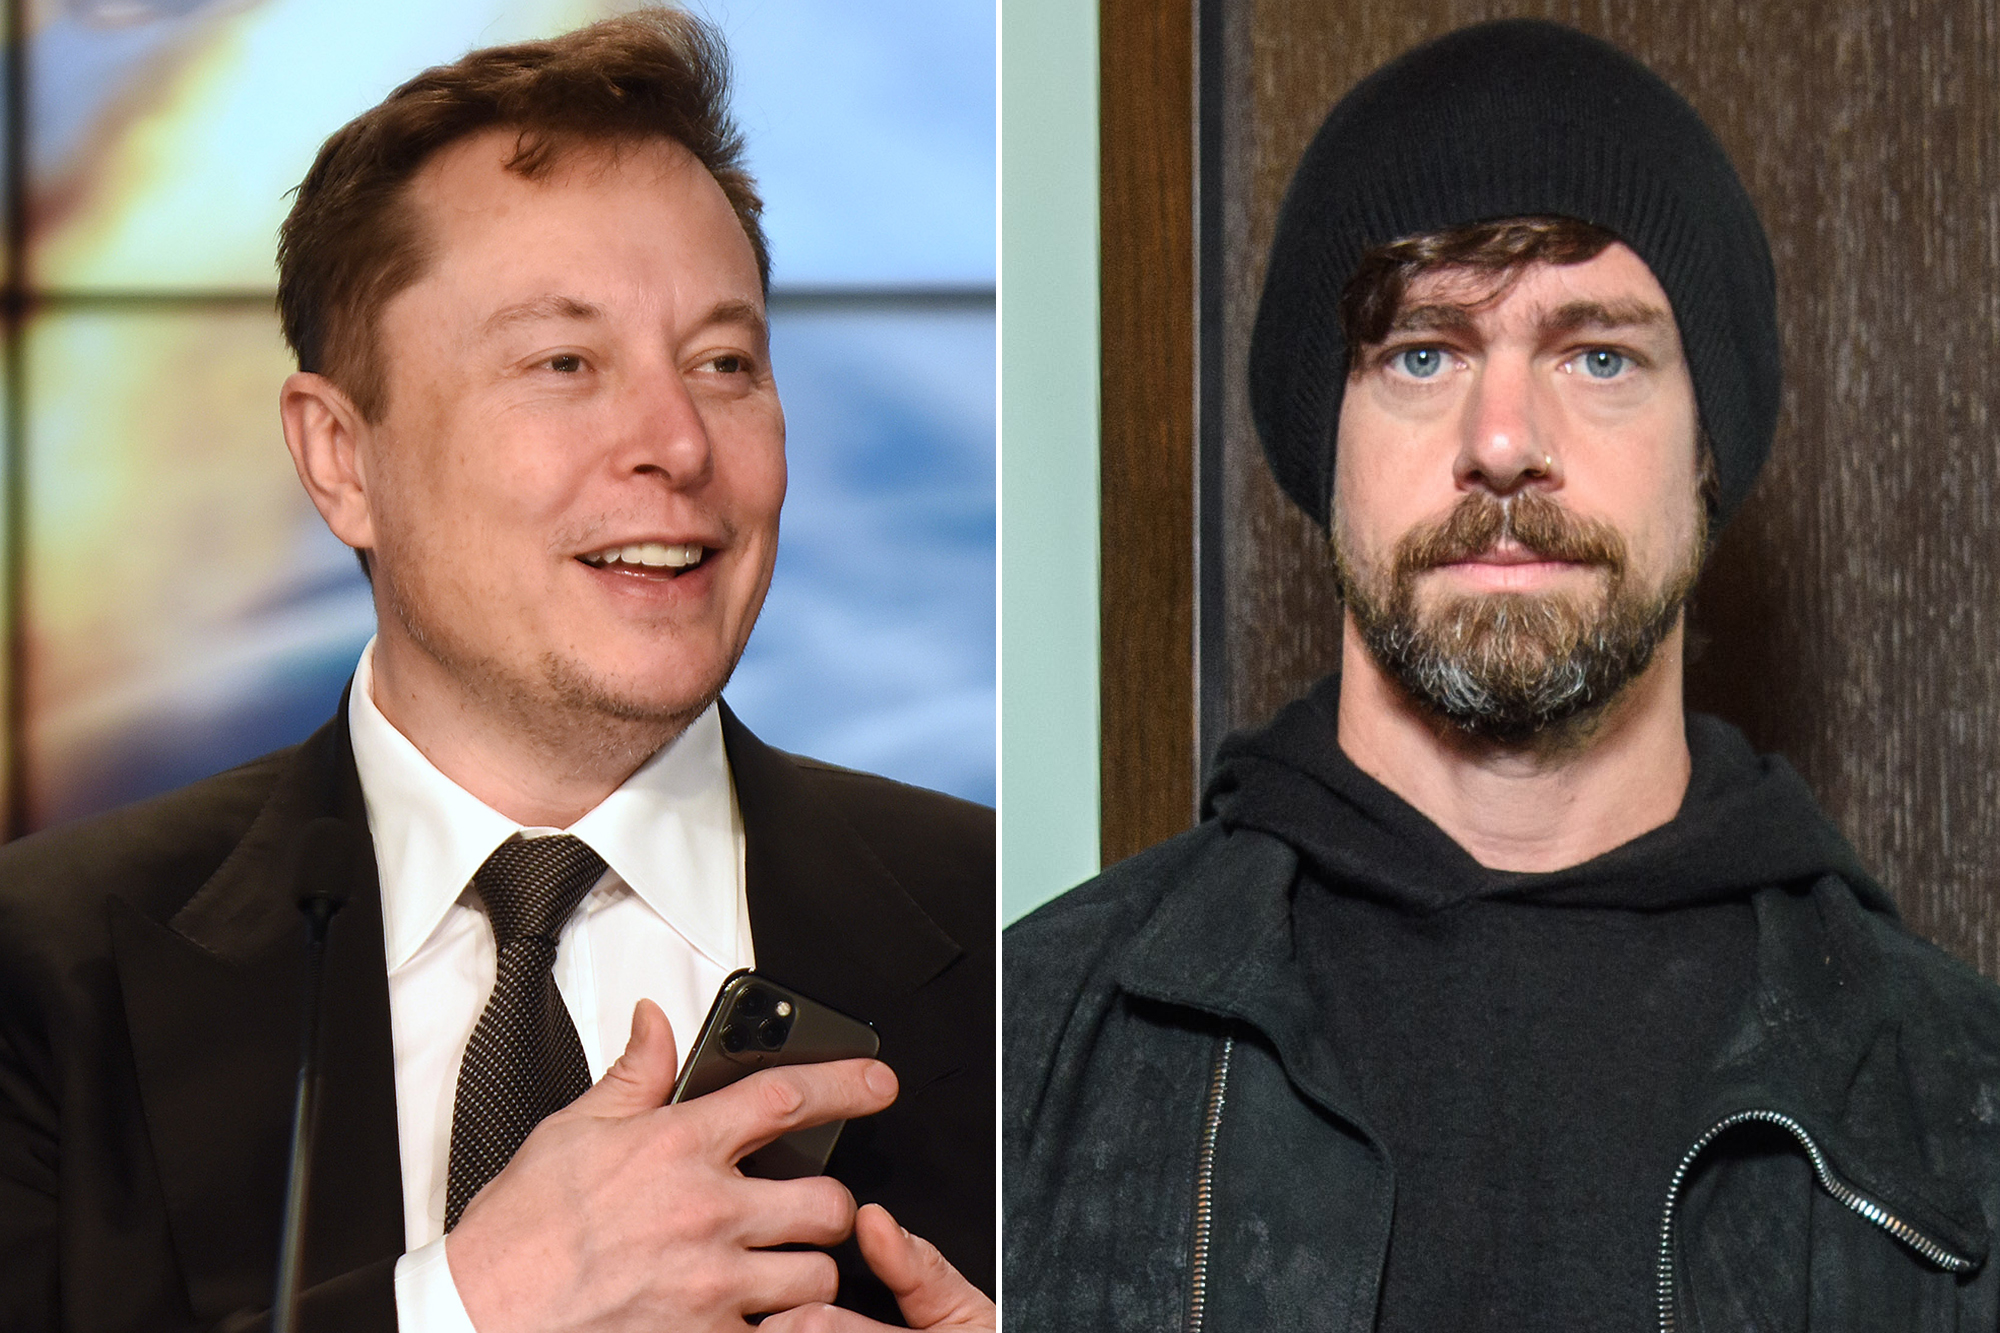 Elon Musk Tweets Support For Twitter Ceo Jack Dorsey